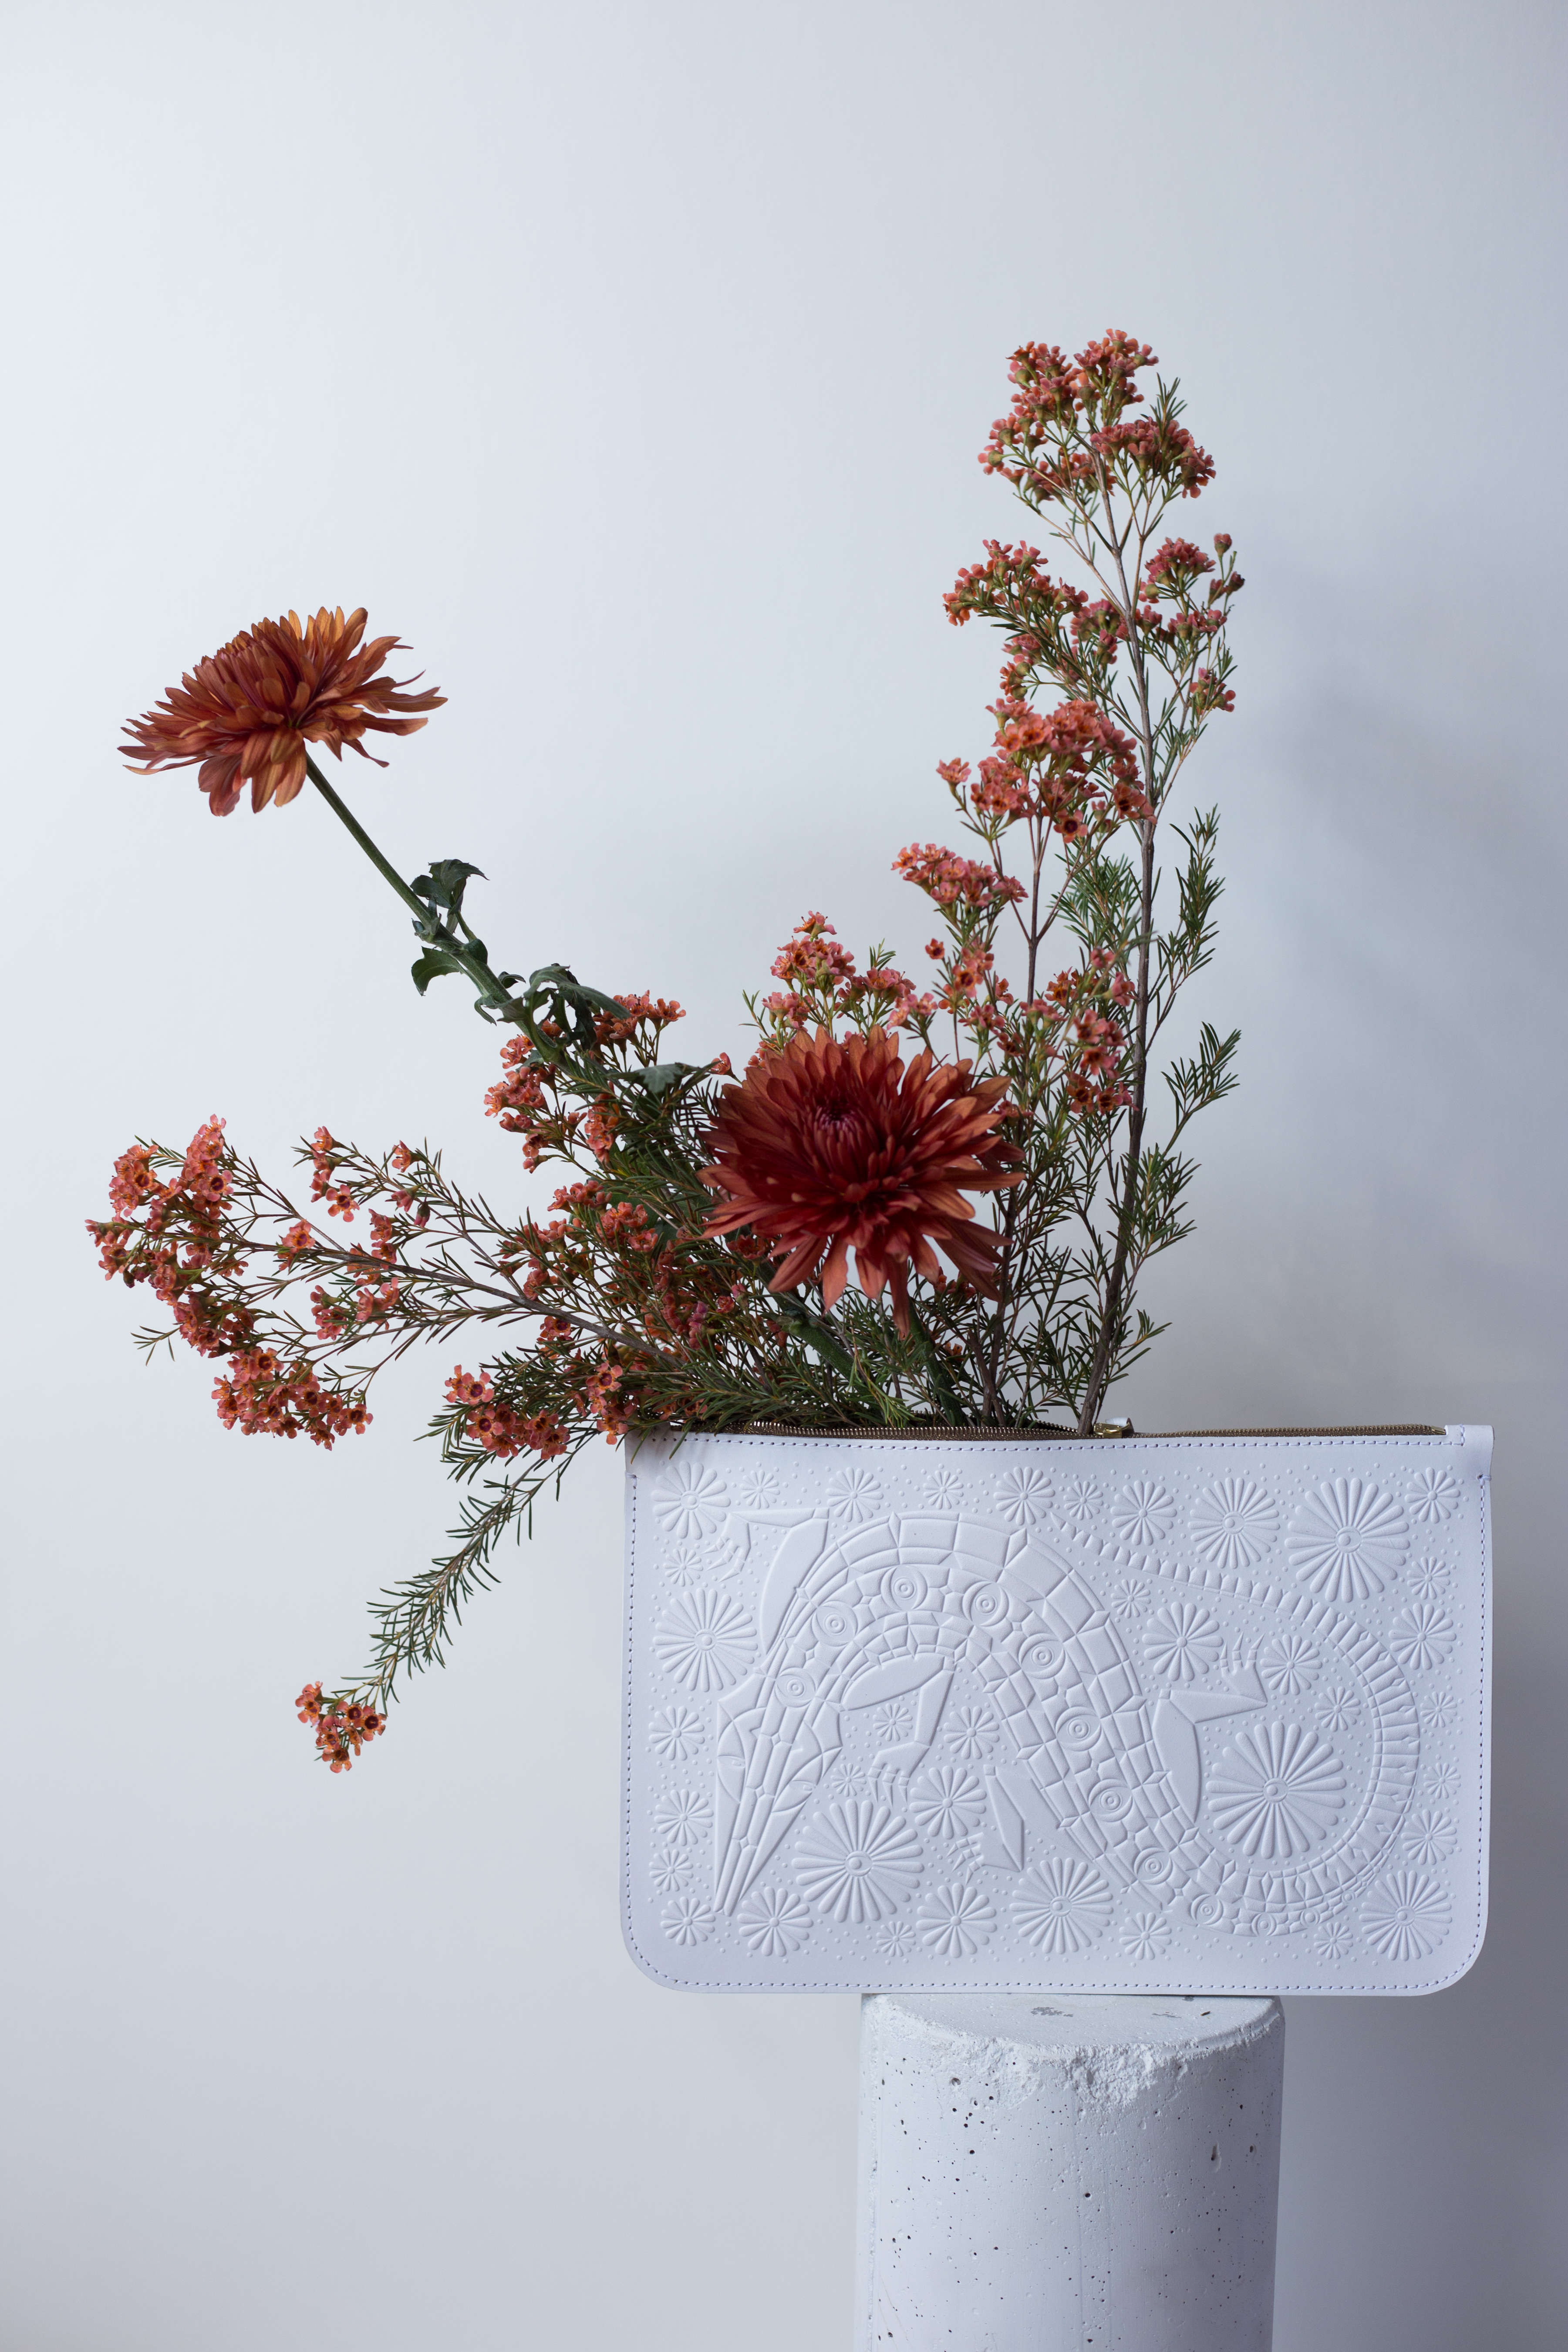 A large white leather clutch with a bold design on it, which includes a large slithering snake or reptile. The clutch is sitting on a white pedestal and has red flowers coming out of the inside of the pouch. the image is captured on a white backdrop.